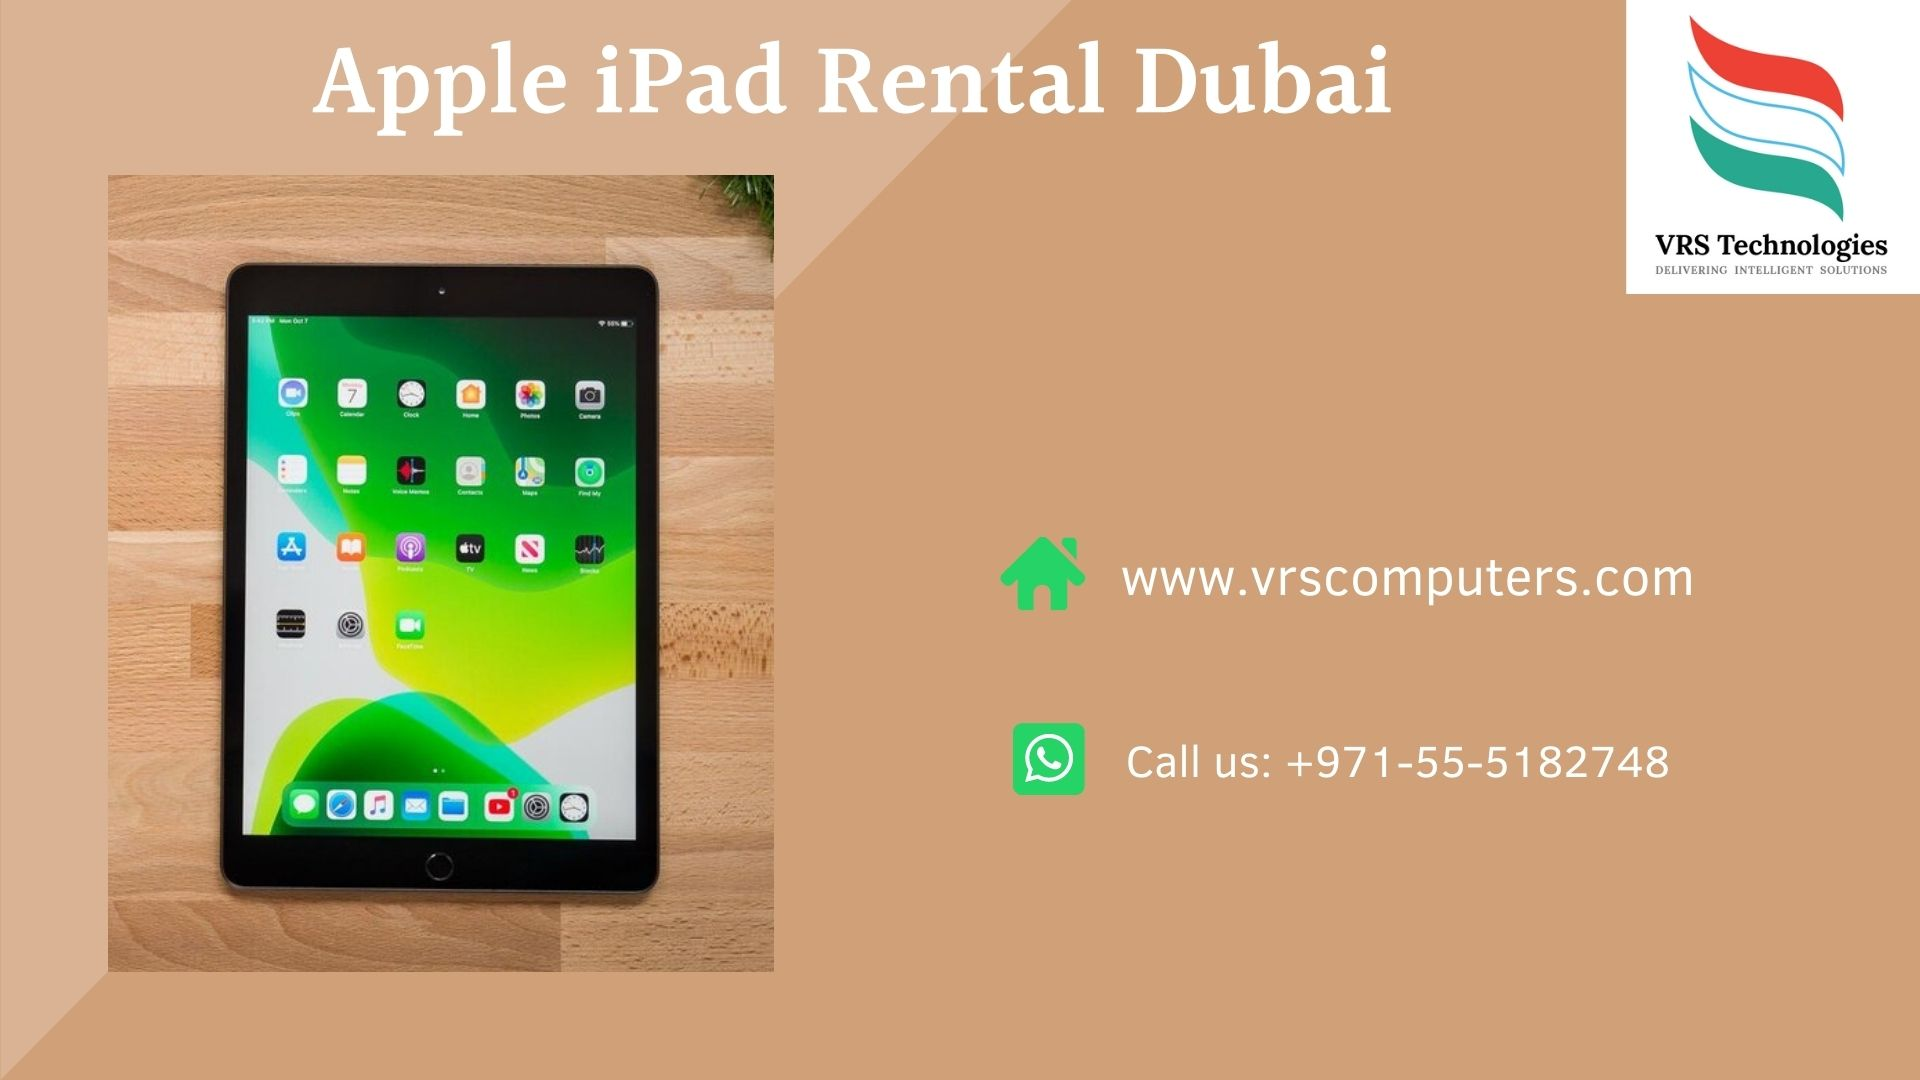 Apple-iPad-Rental-Dubai.jpg